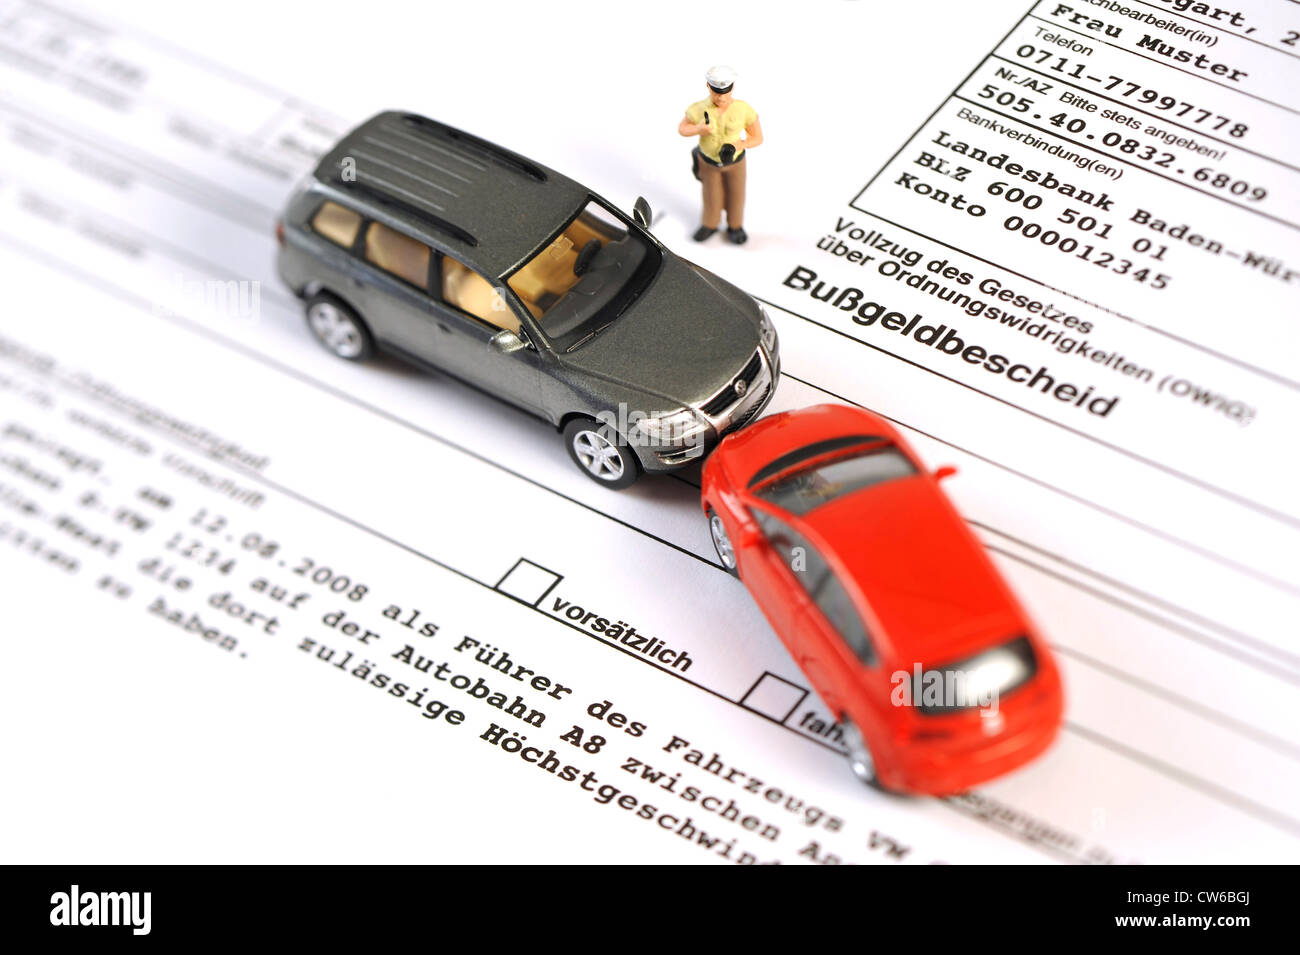 symbolic picture: acquisition of accident data, little police man figure and model cars on a fine document - Stock Image